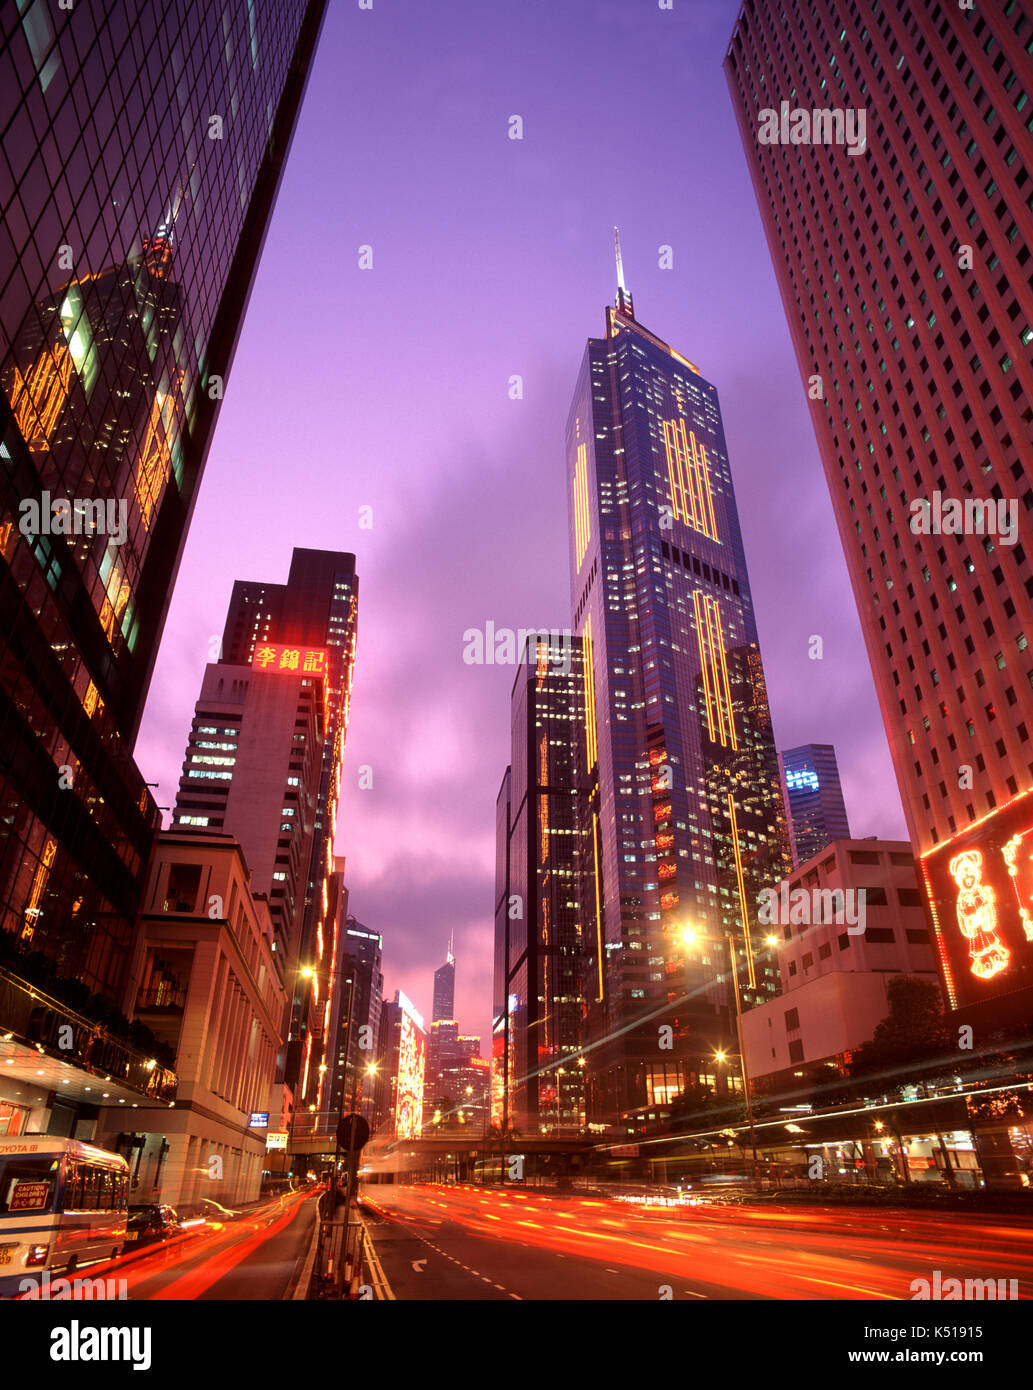 Busy street scene in financial district, Hong Kong, China - Stock Image